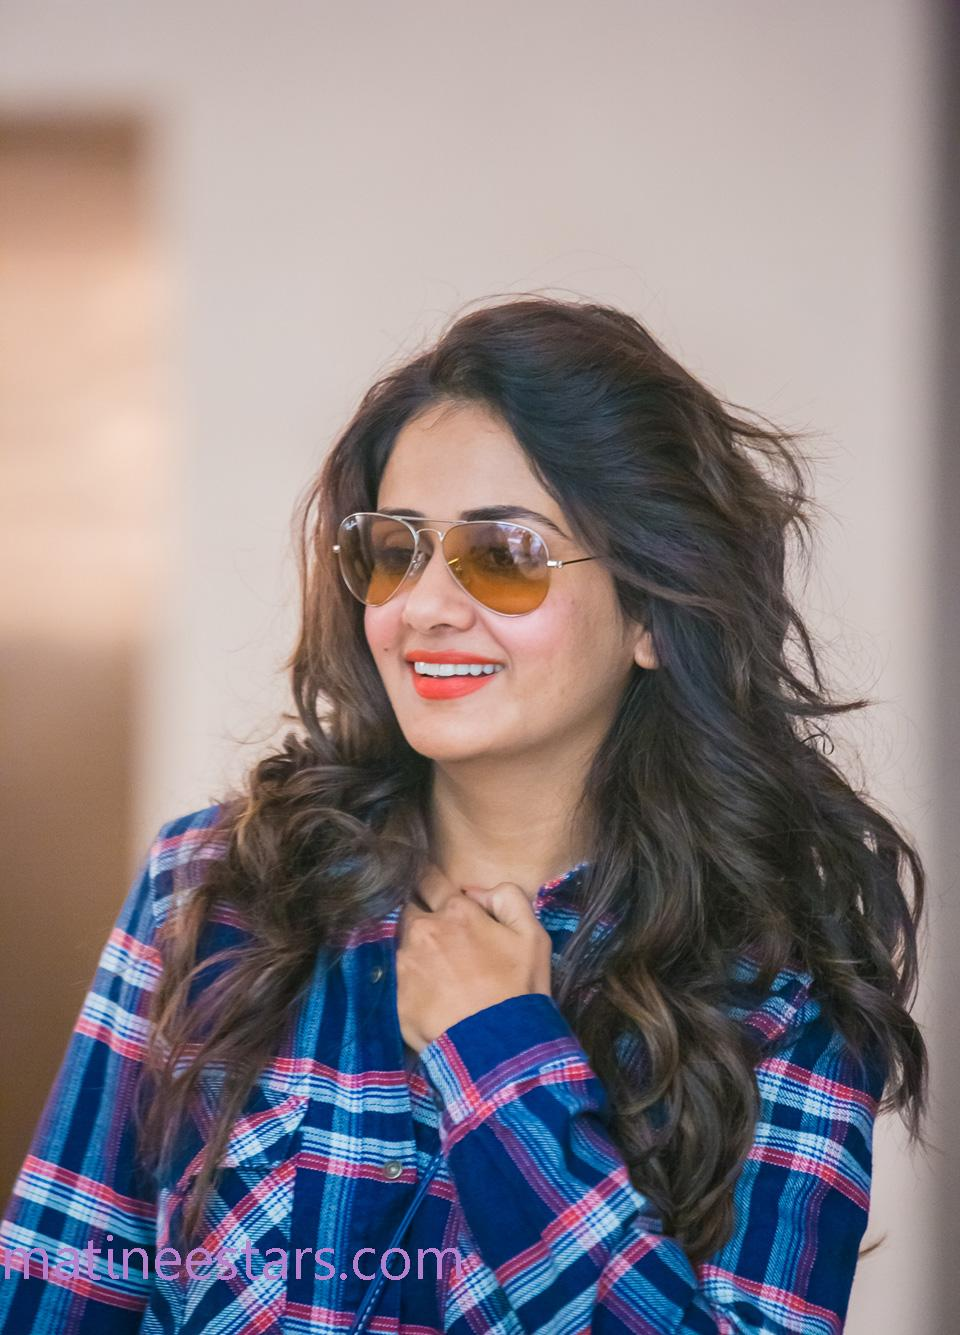 parul yadav wallpapers, parul yadav hot pics, parul yadav sexy pics , parul yadav latest pics,parul yadav movie, parul yadav hot photo,sandalwood actress